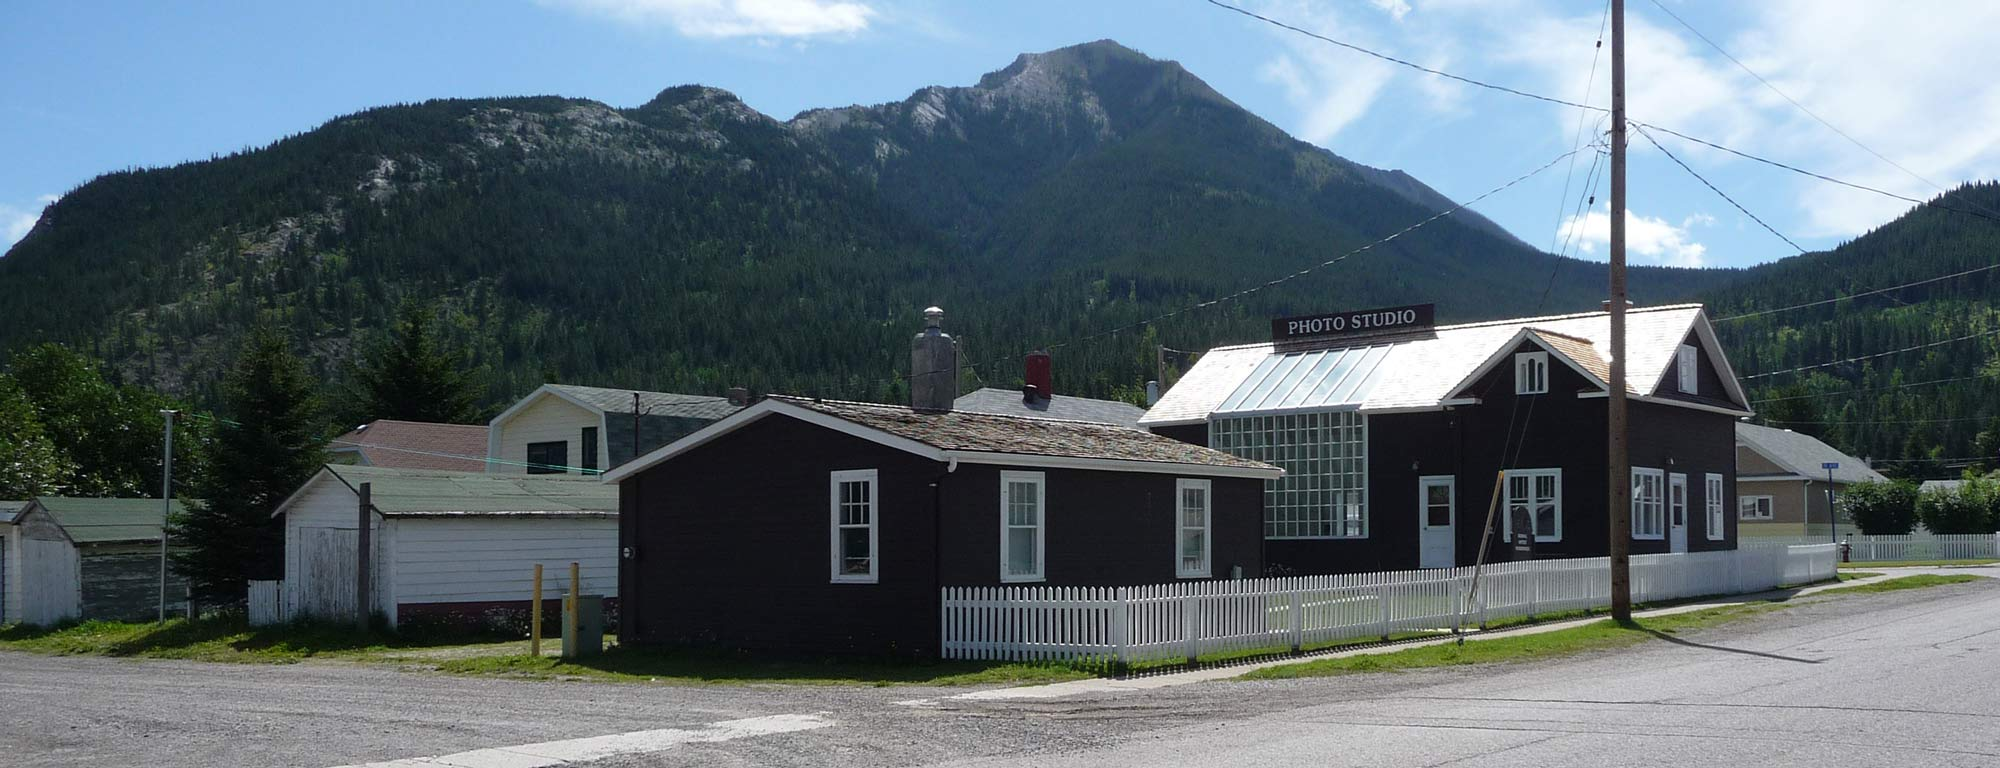 Exterior image of Gushul Studio with mountains behind